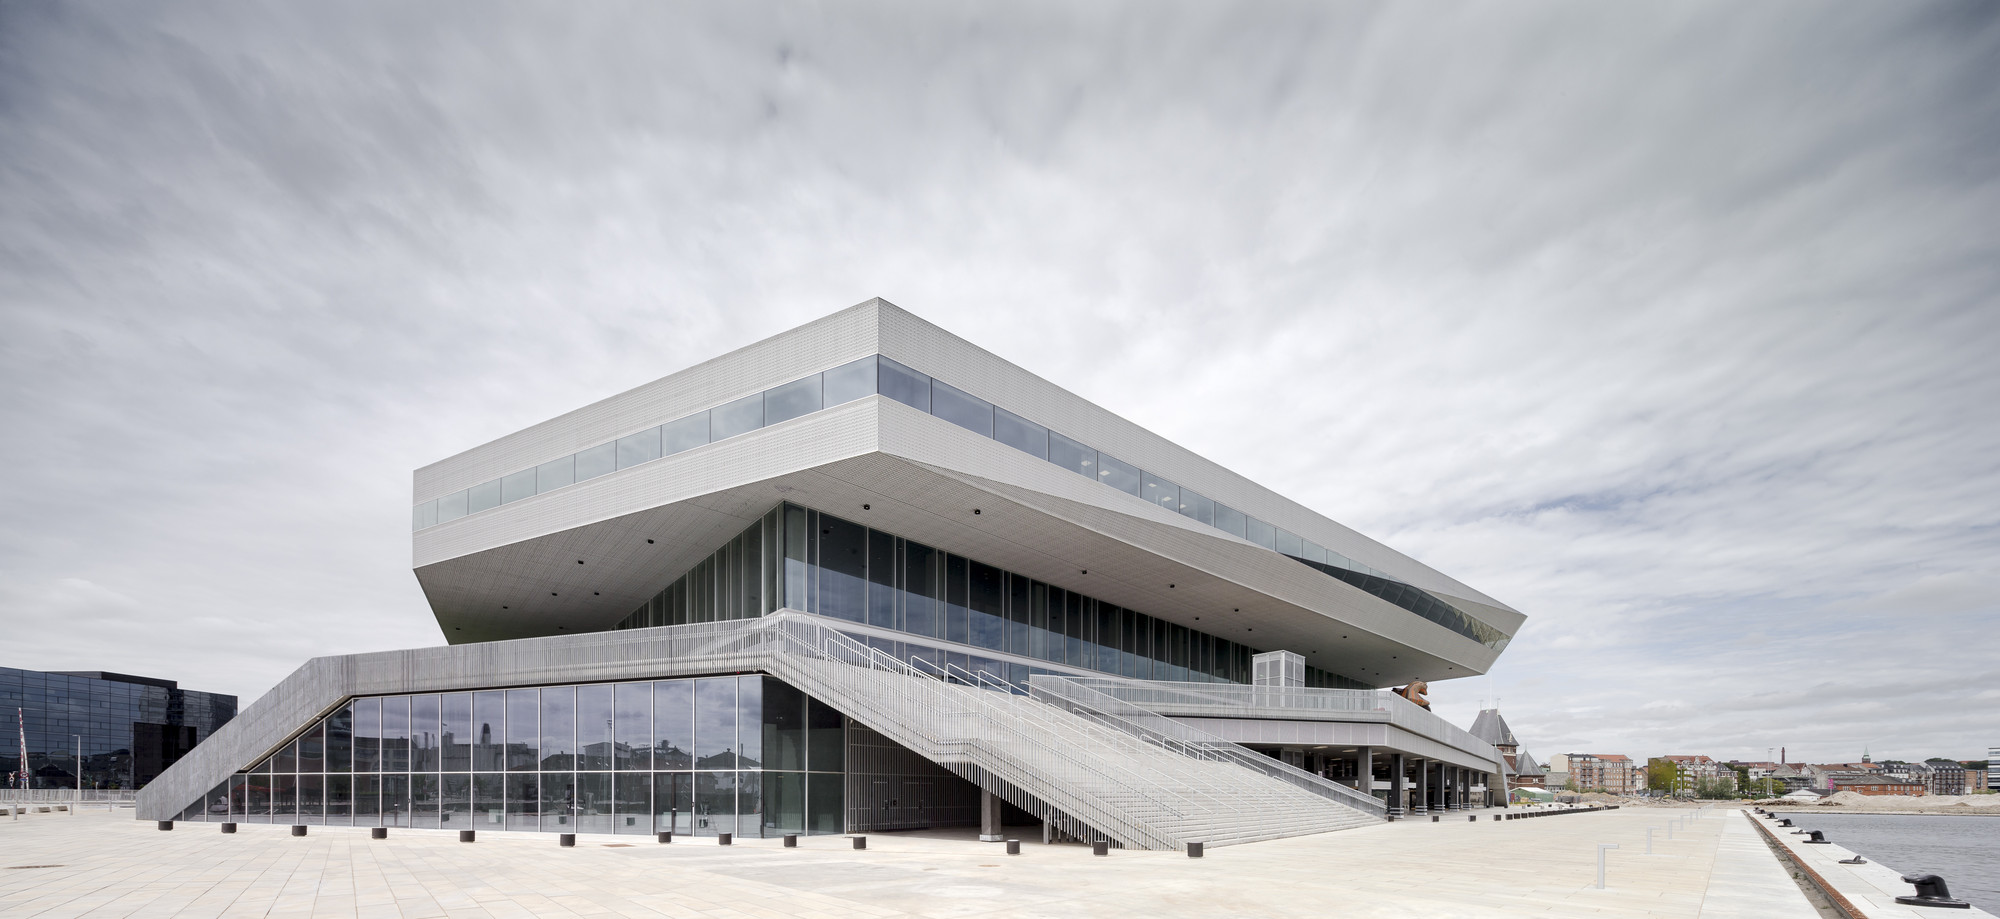 Dokk1 schmidt hammer lassen architects archdaily for Architektur software